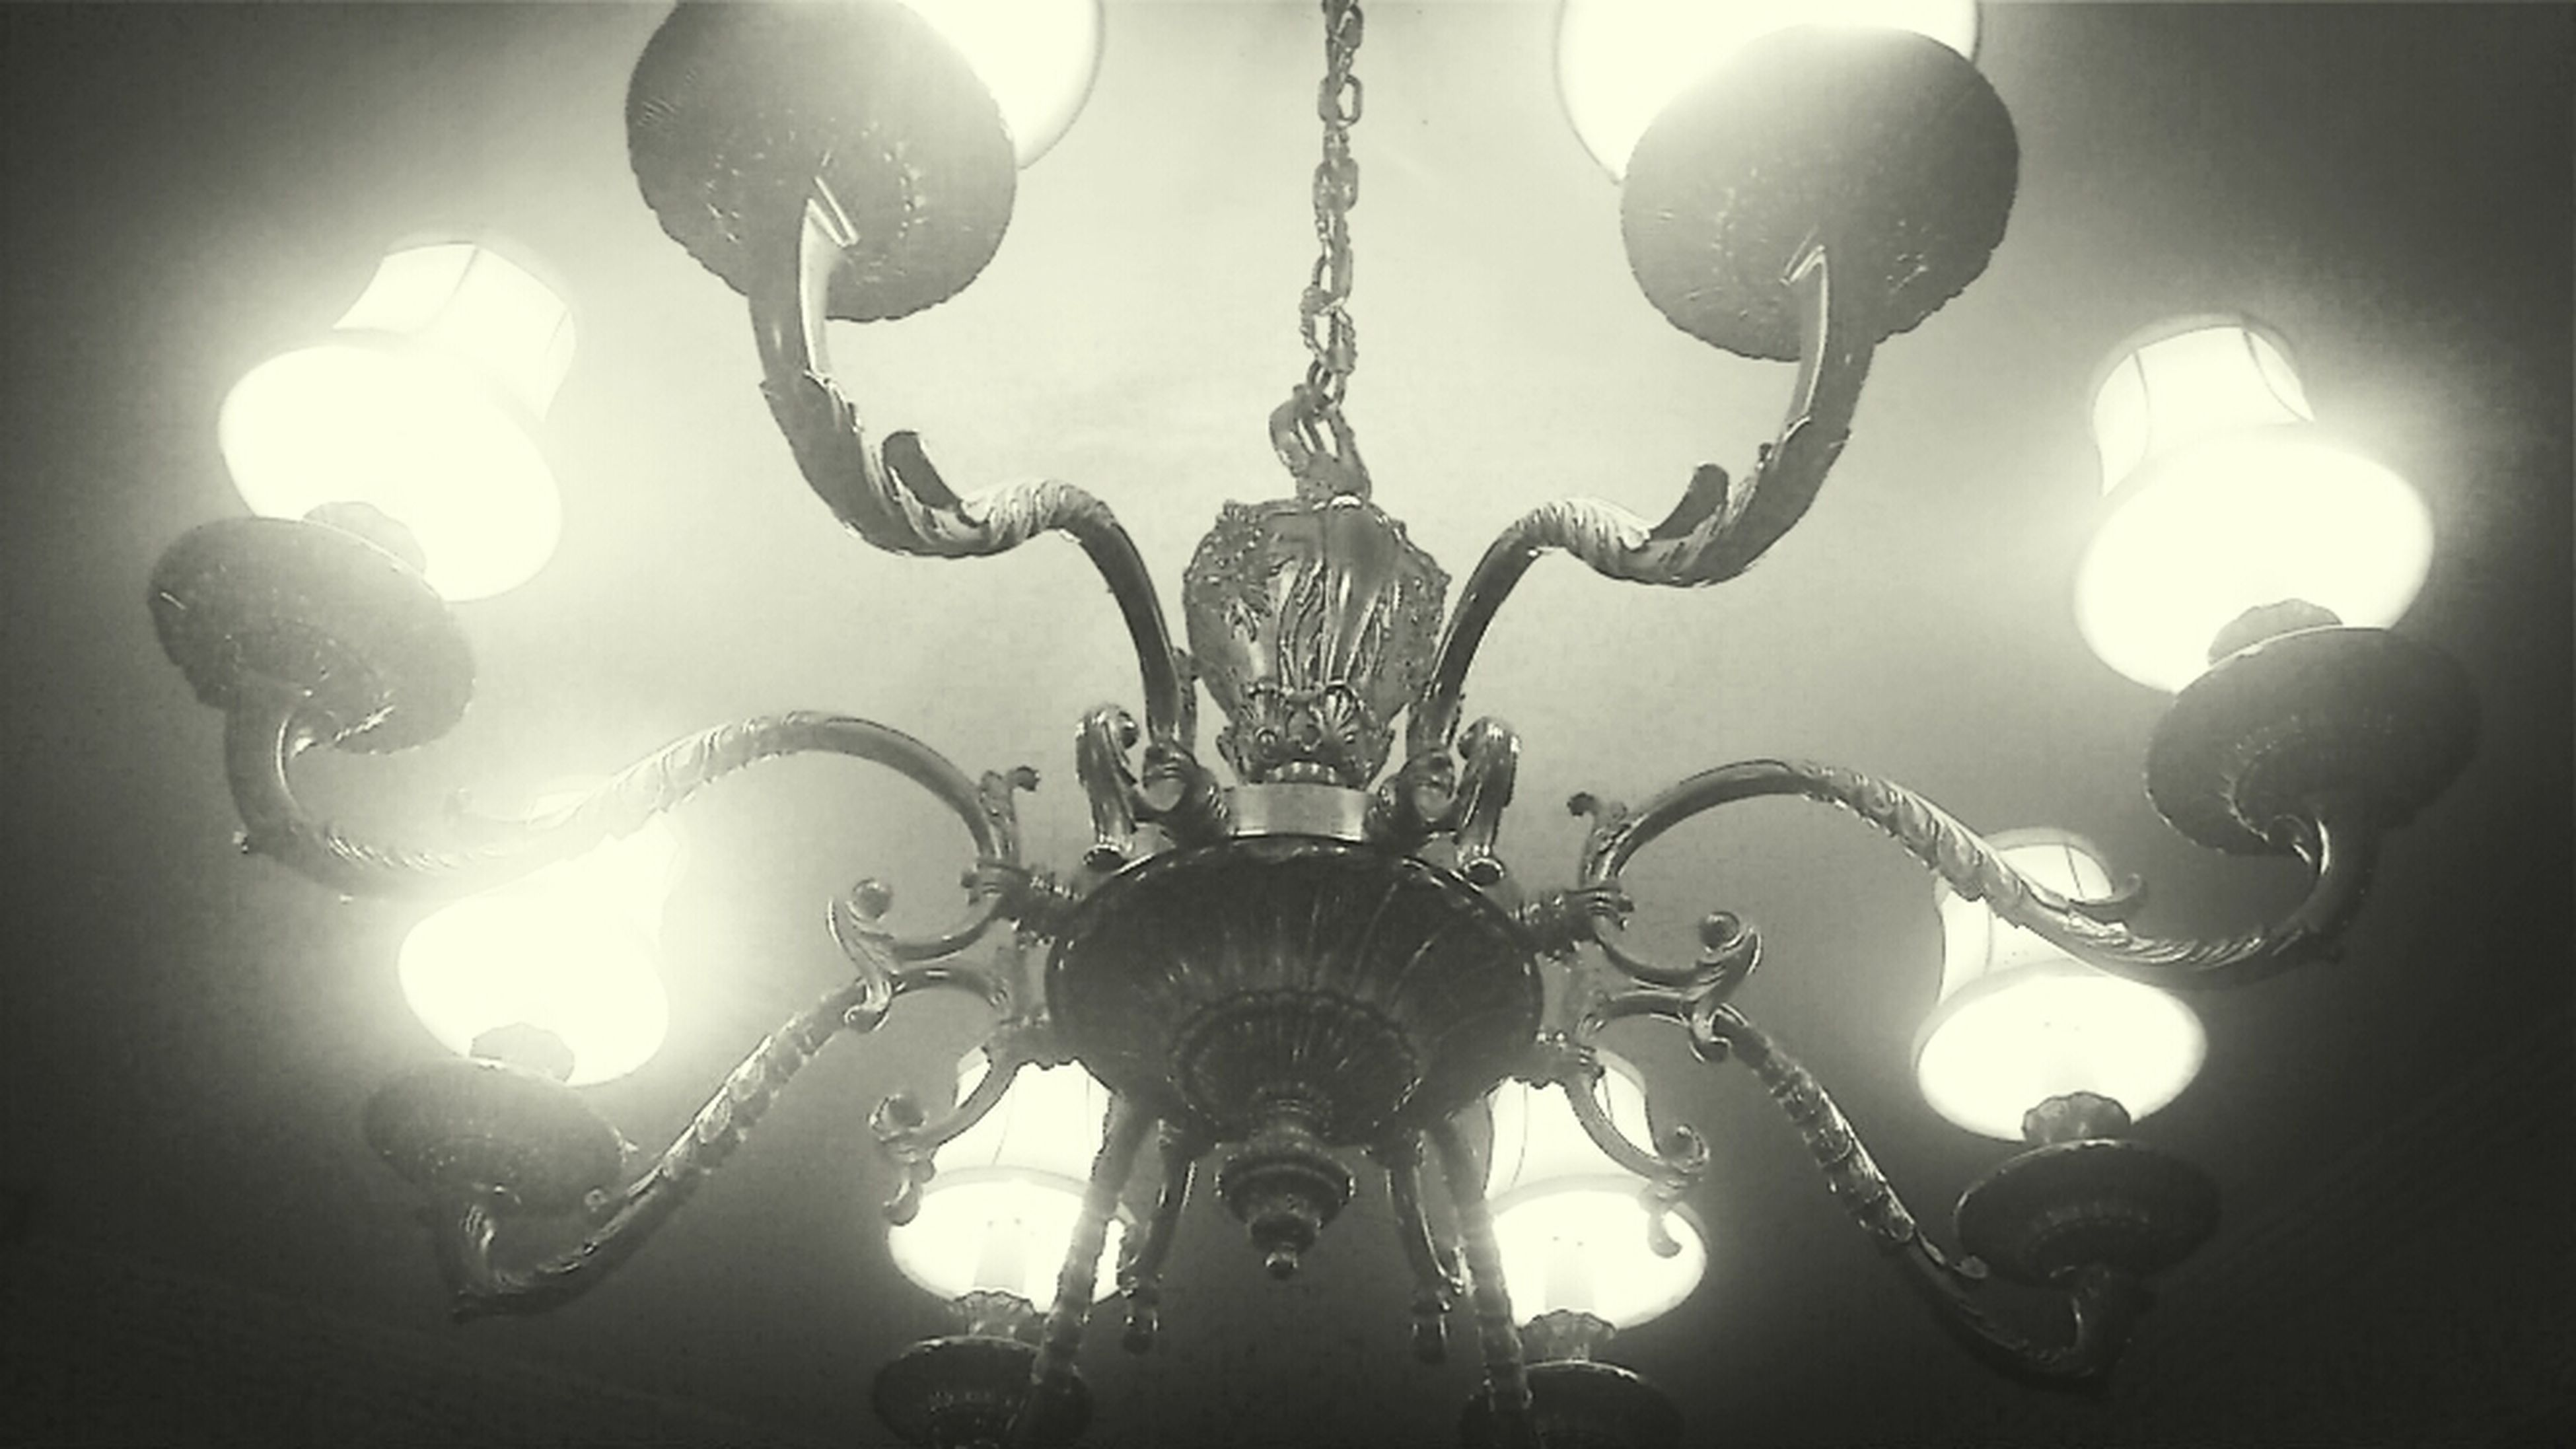 lighting equipment, illuminated, hanging, indoors, low angle view, electricity, decoration, electric light, light bulb, electric lamp, chandelier, ceiling, glowing, light - natural phenomenon, no people, decor, in a row, street light, close-up, lit